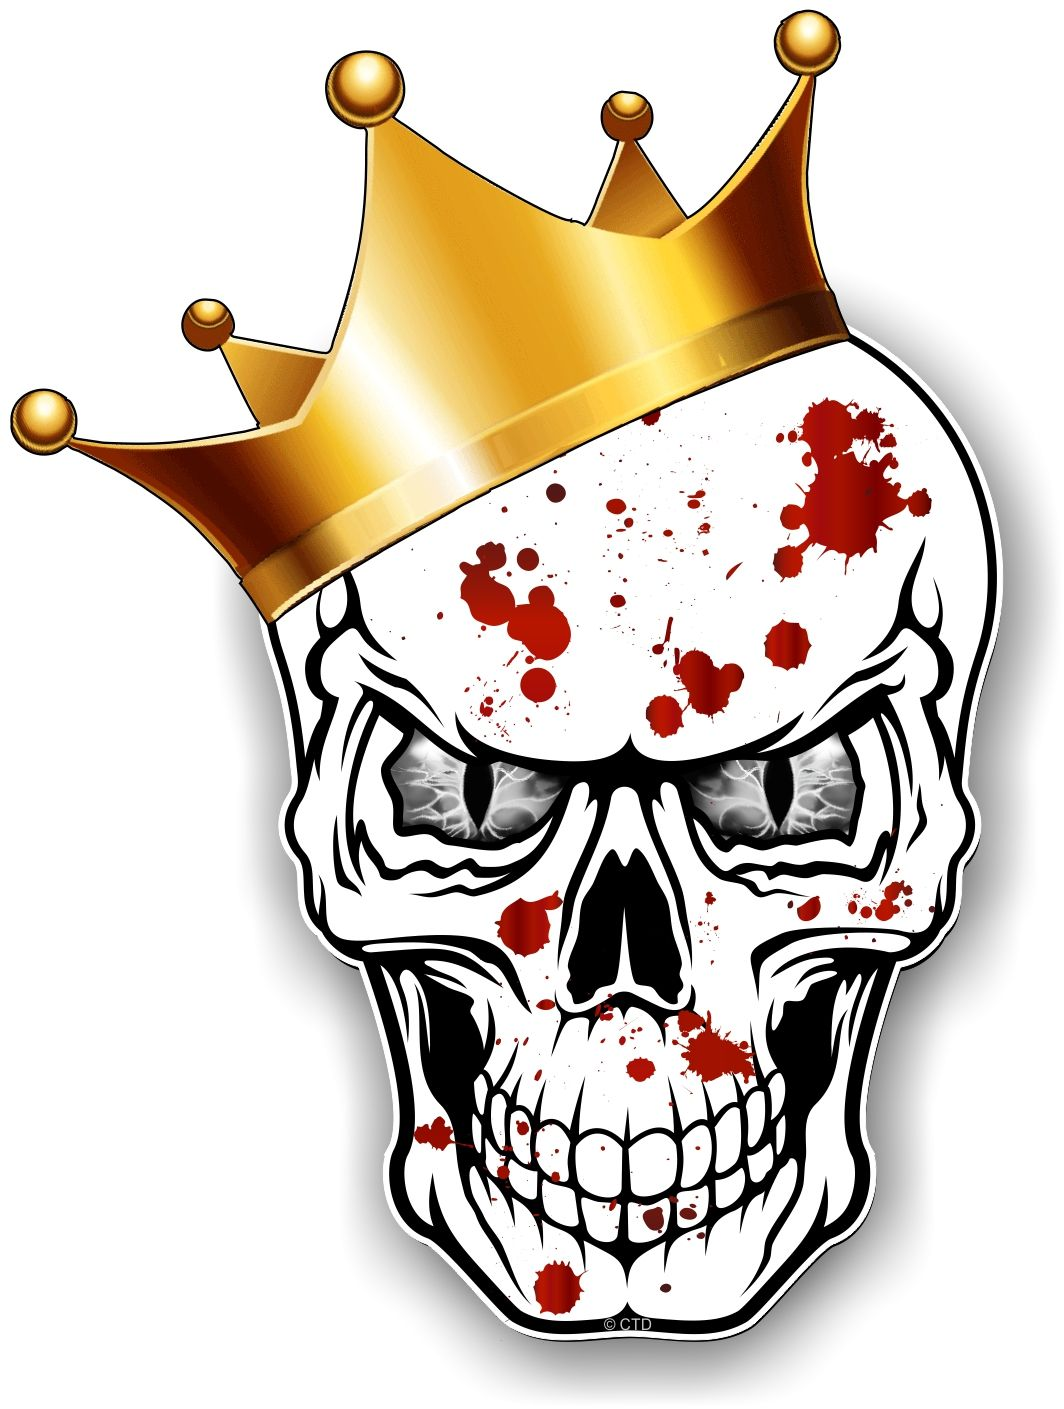 Muscle Car Wallpaper Iphone 6 Gothic King Of Skull Skulls With Grey Evil Eyes And Crown